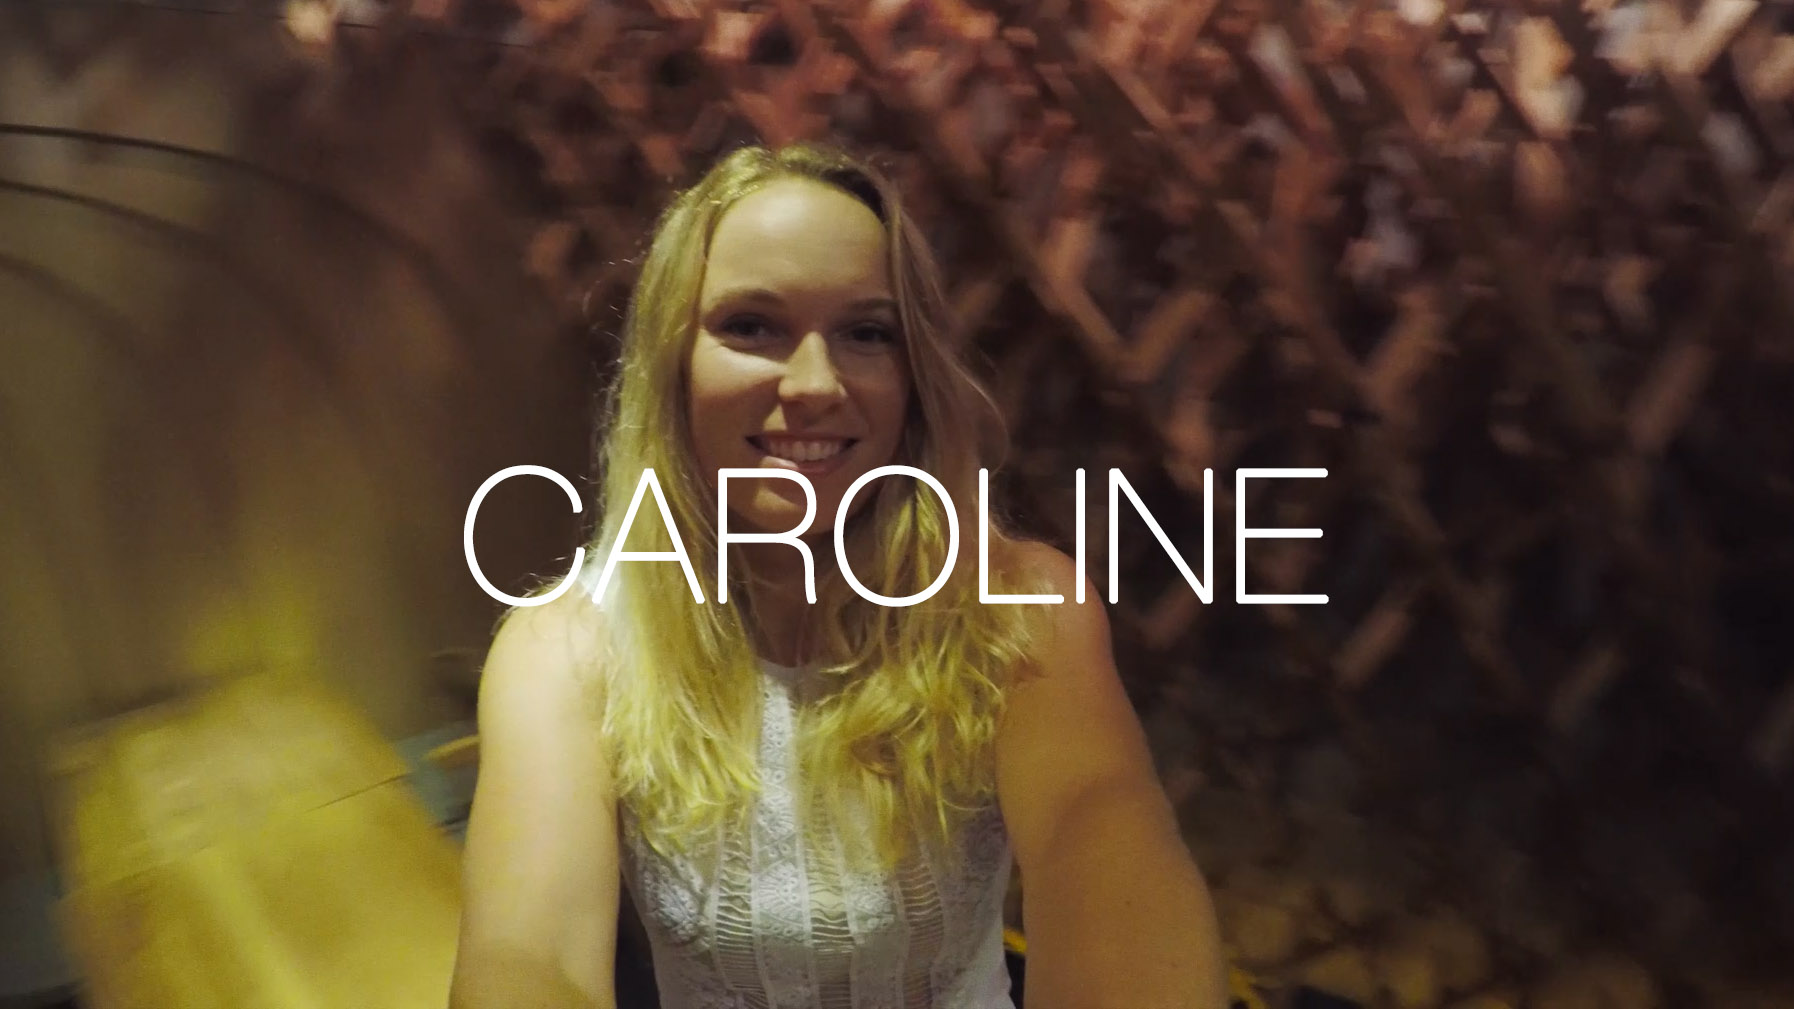 Copy of Tennis Superstar Caroline Wozniacki Experiences Singapore